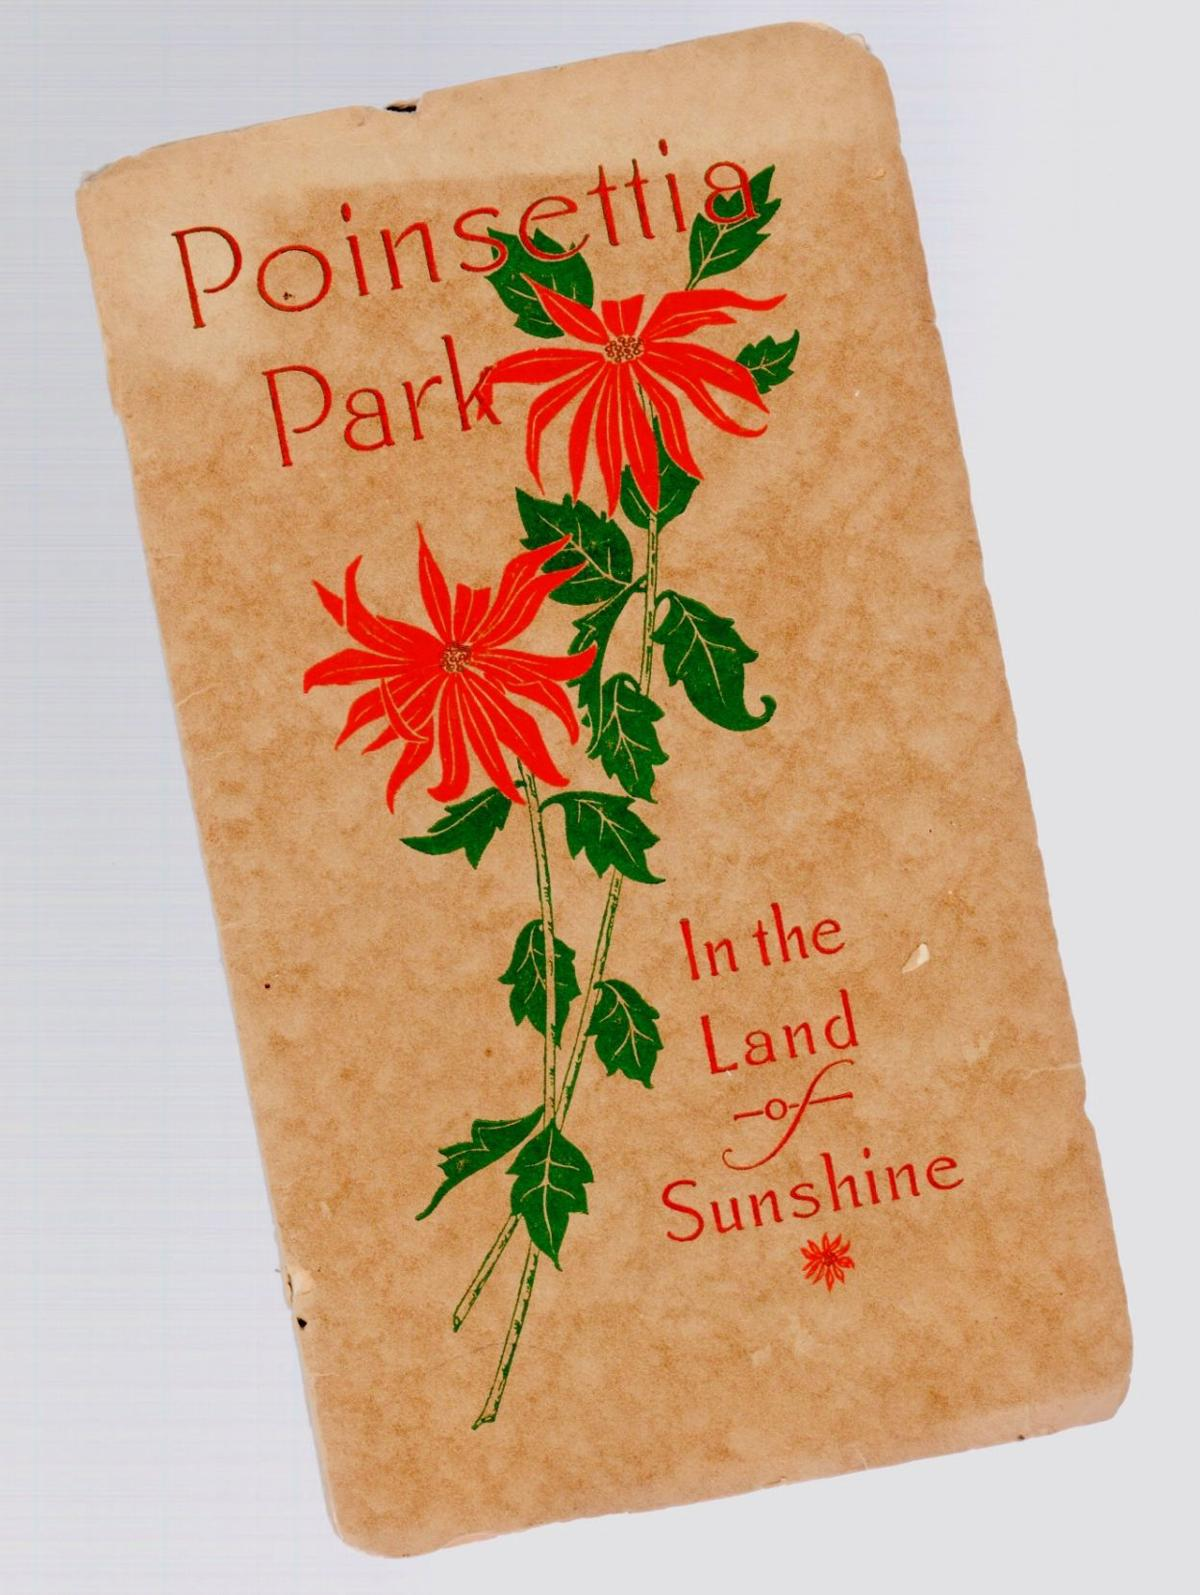 Poinsettia Park brochure